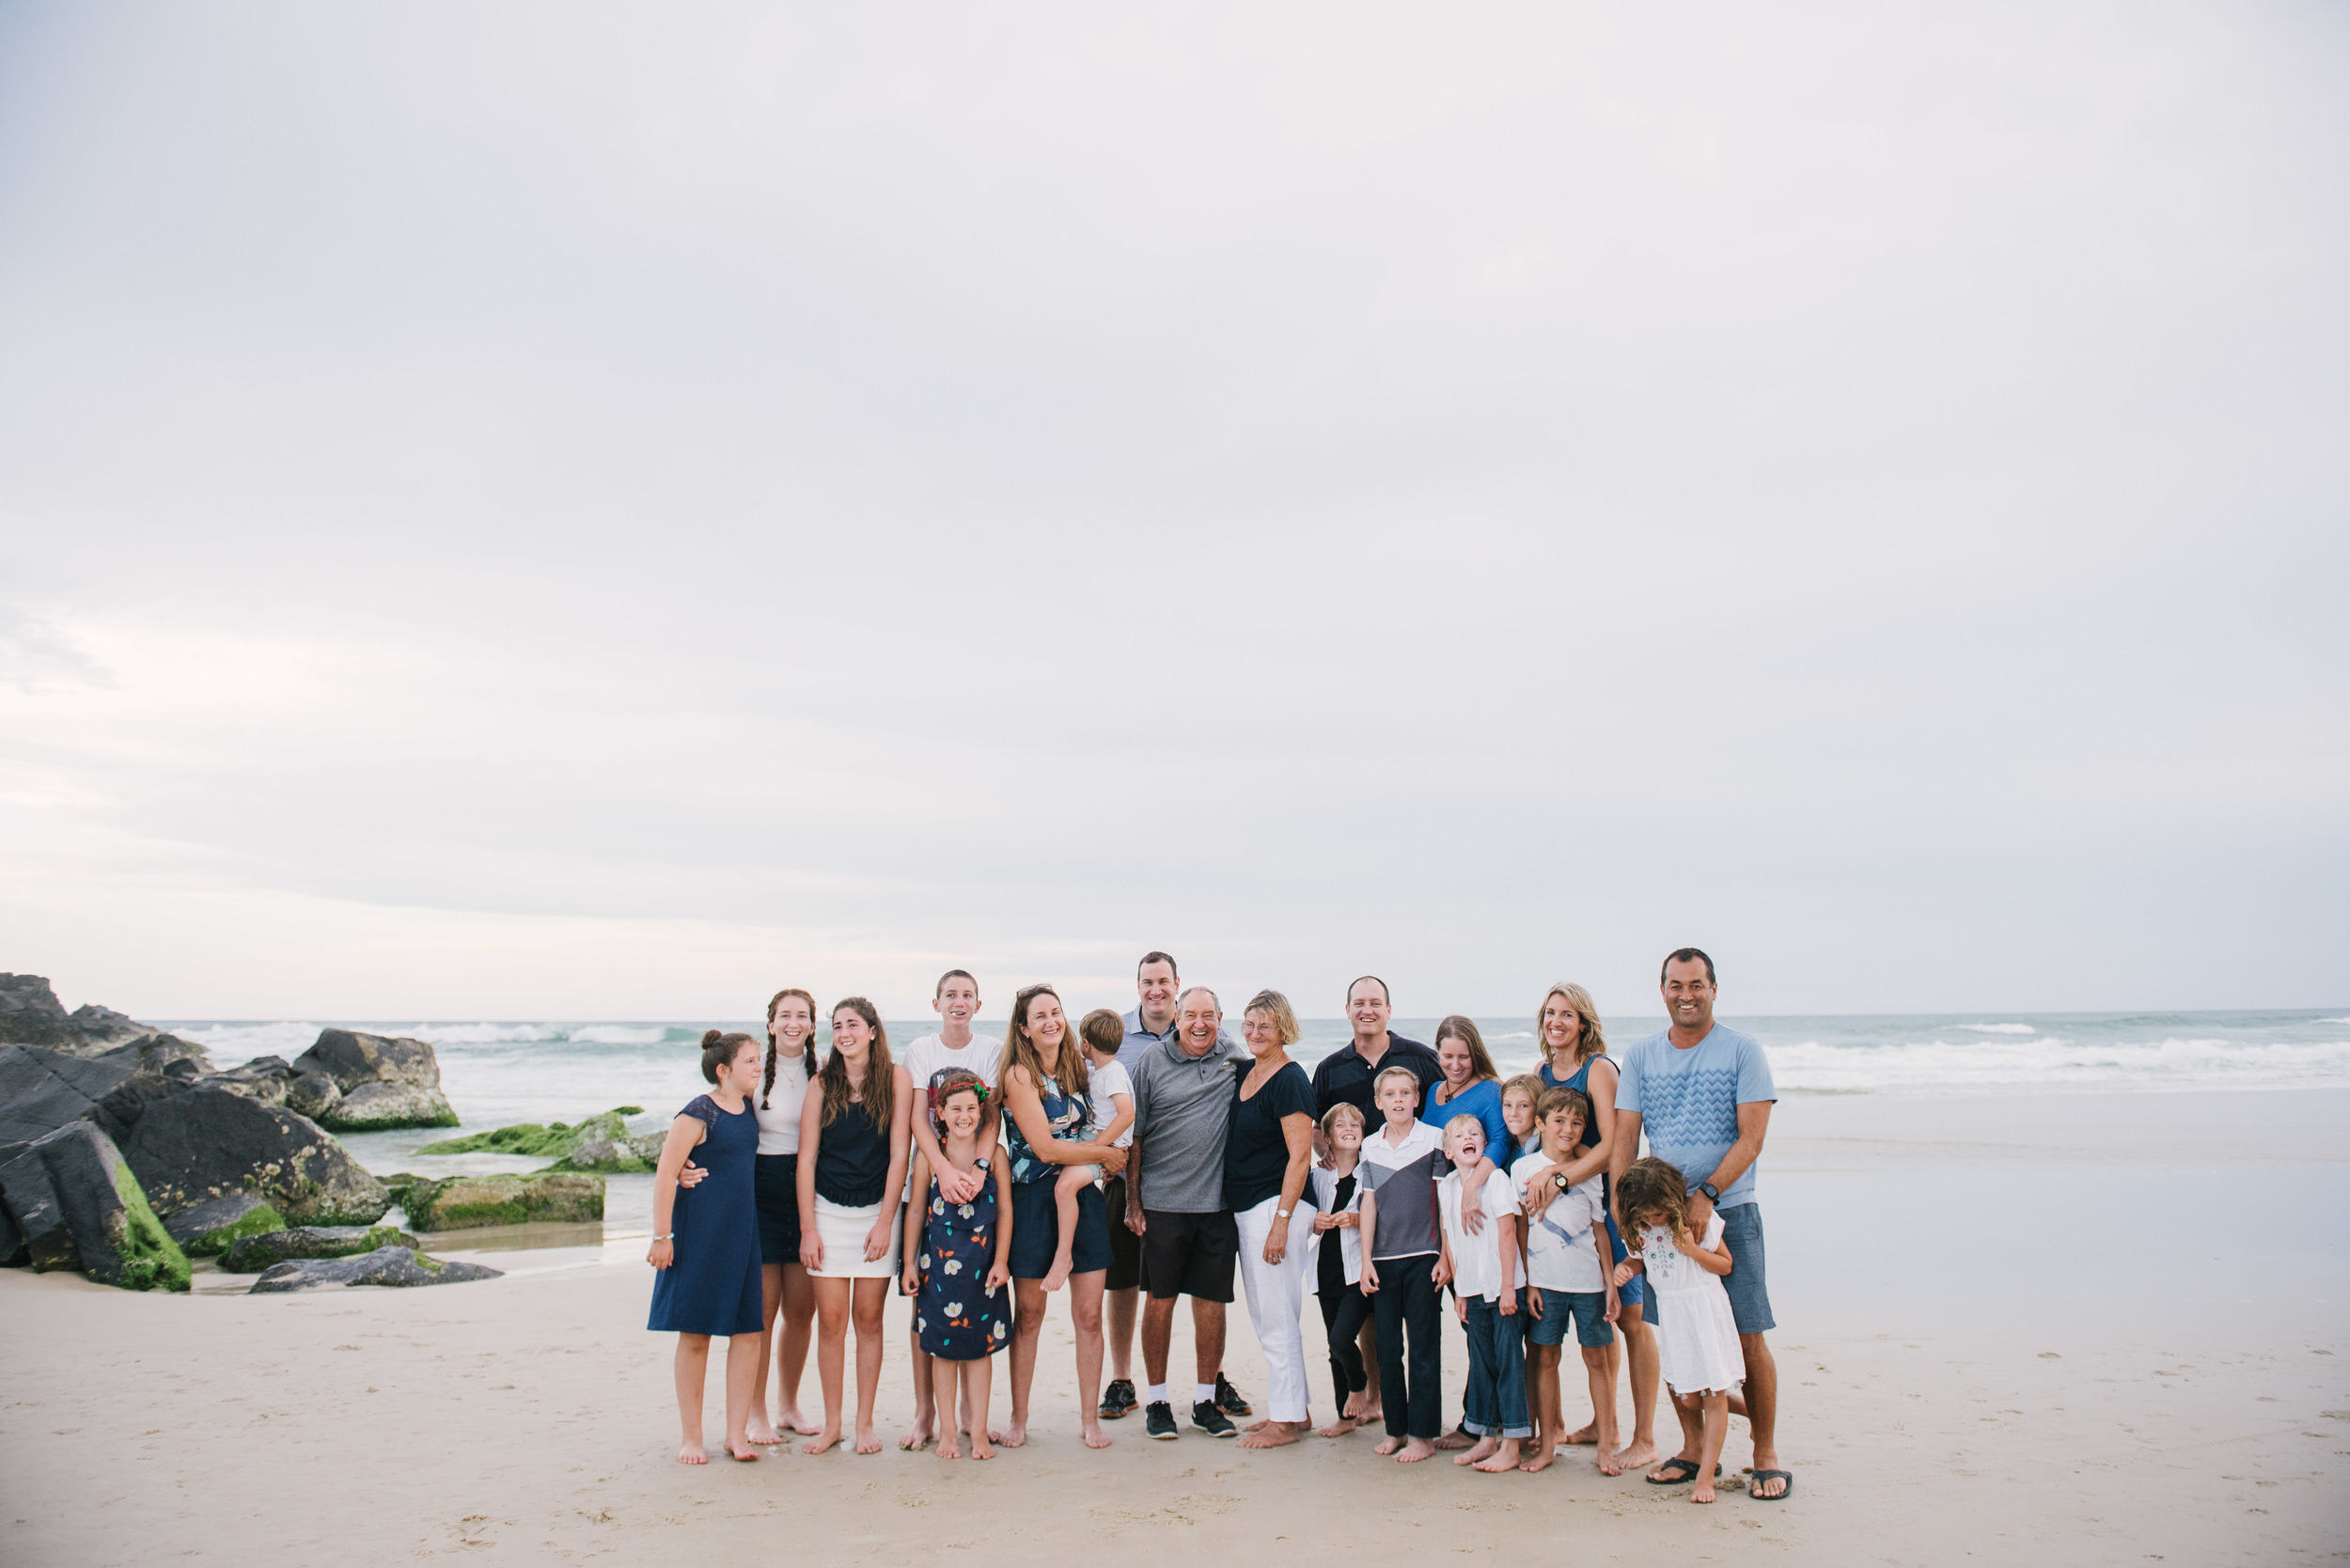 Ness family reunion-family-photography-wedding-photography-family-children-goldcoast-northernNSW-162.jpg